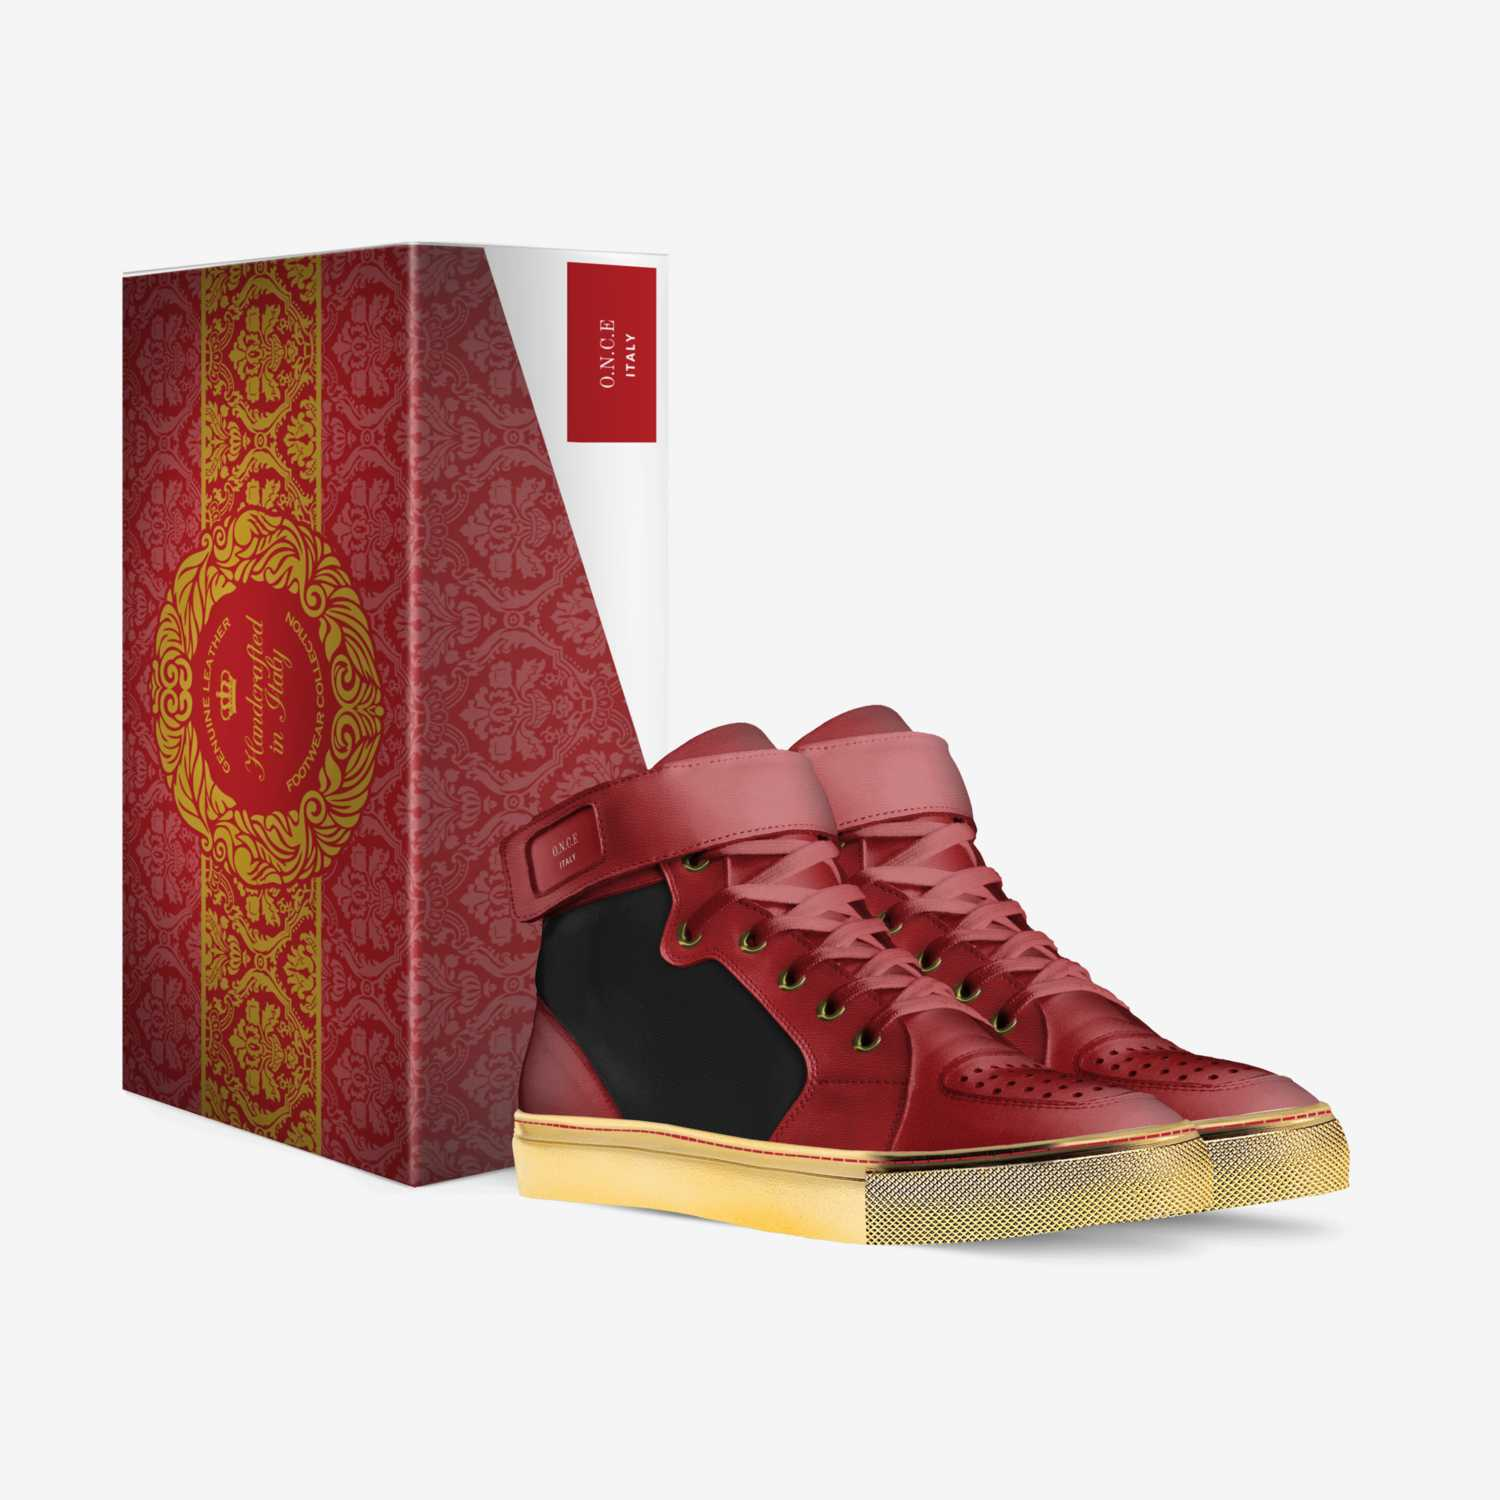 O.N.C.E custom made in Italy shoes by J2 | Box view